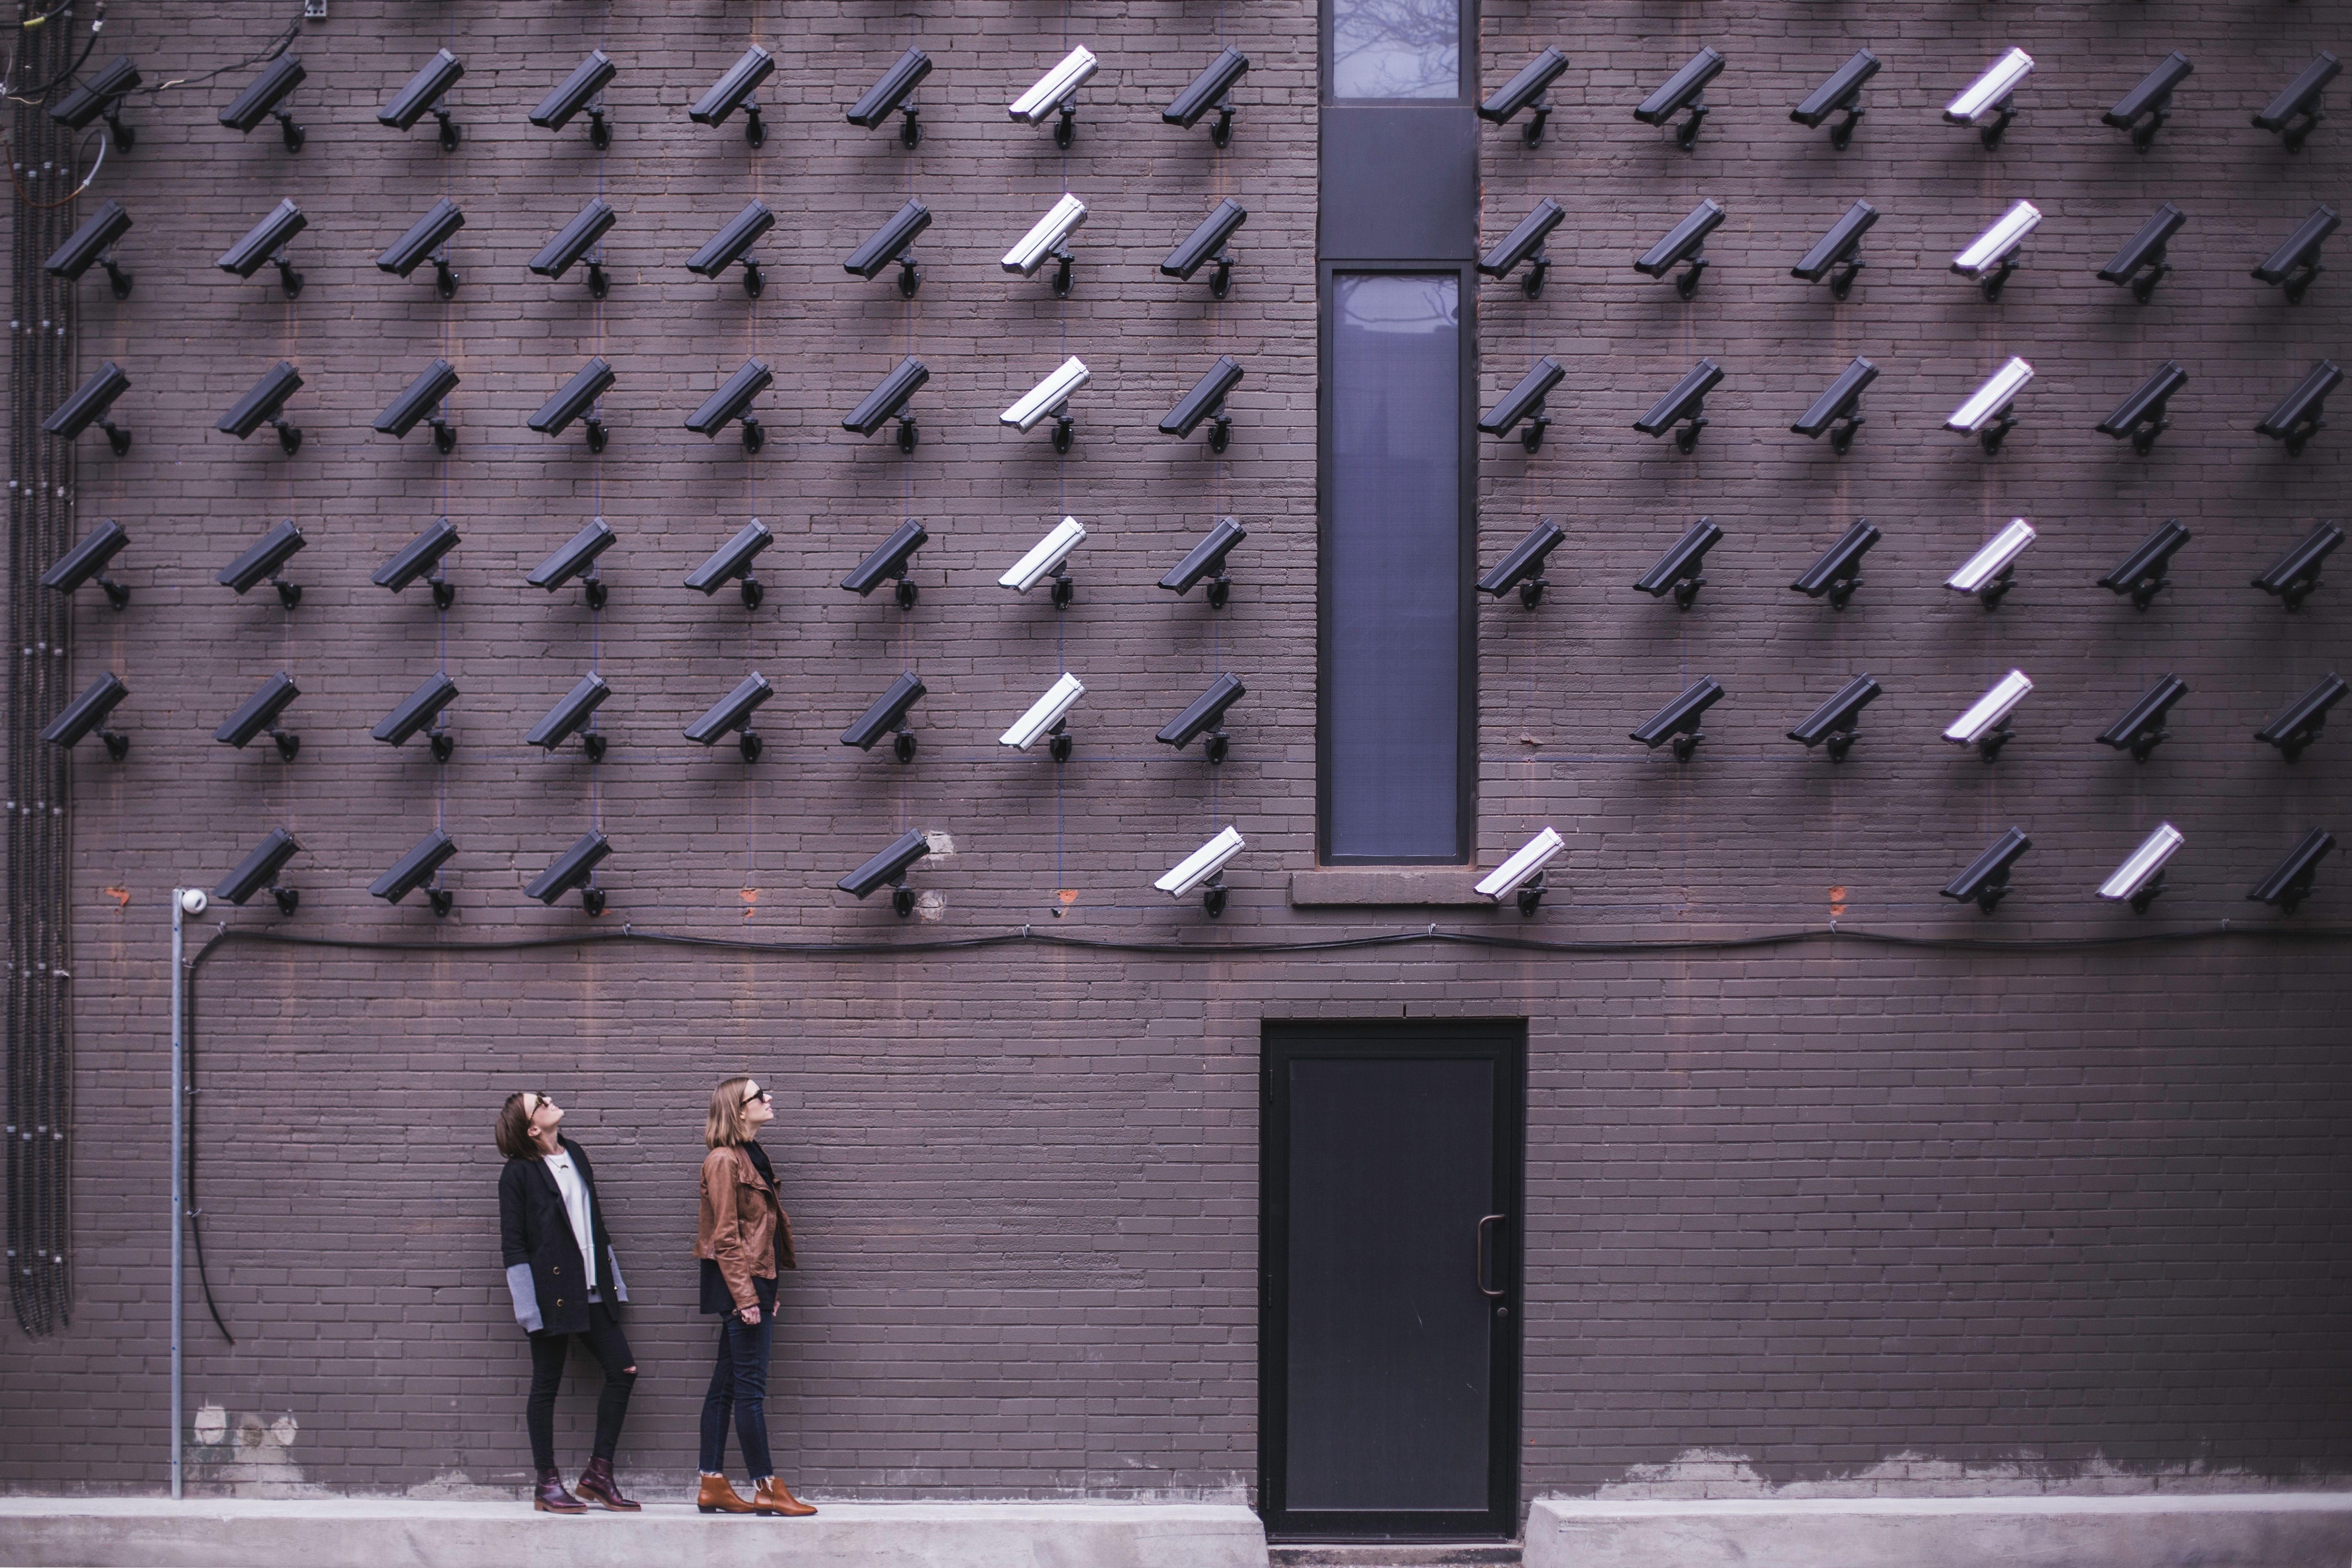 /smart-cities-raise-data-privacy-concerns-wl823183 feature image